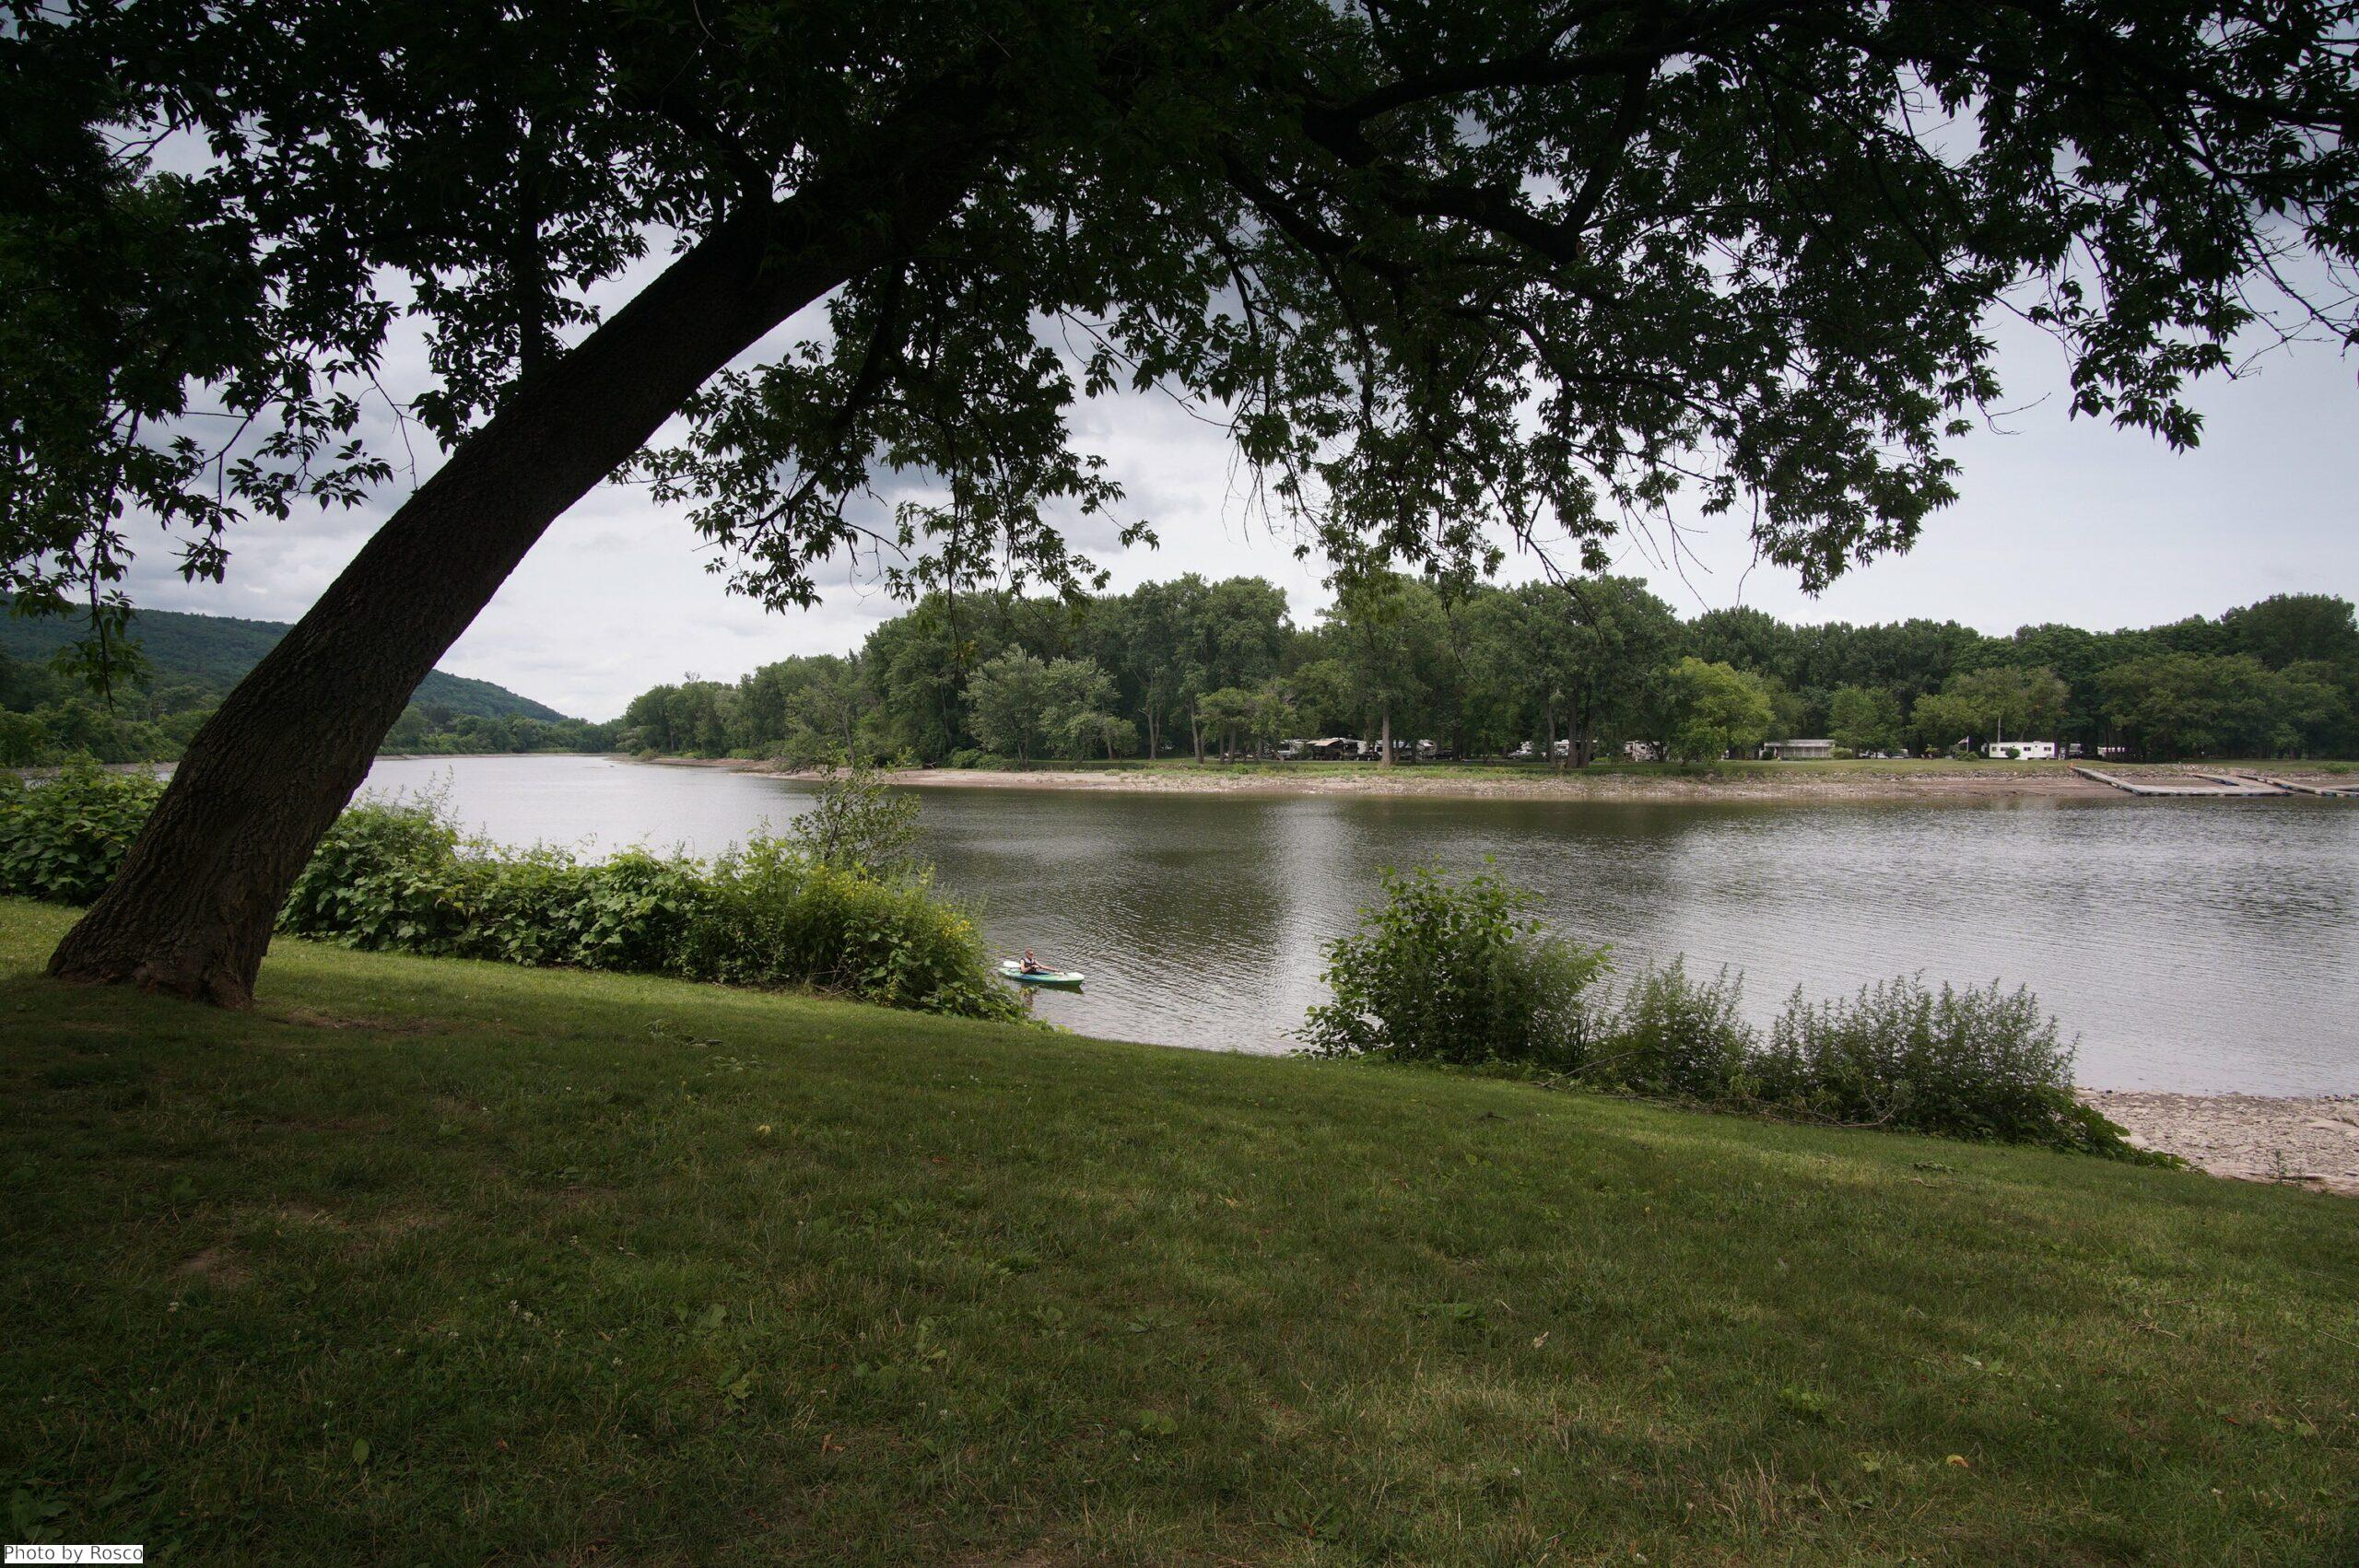 July 10 – Cohoes to Rotterdam